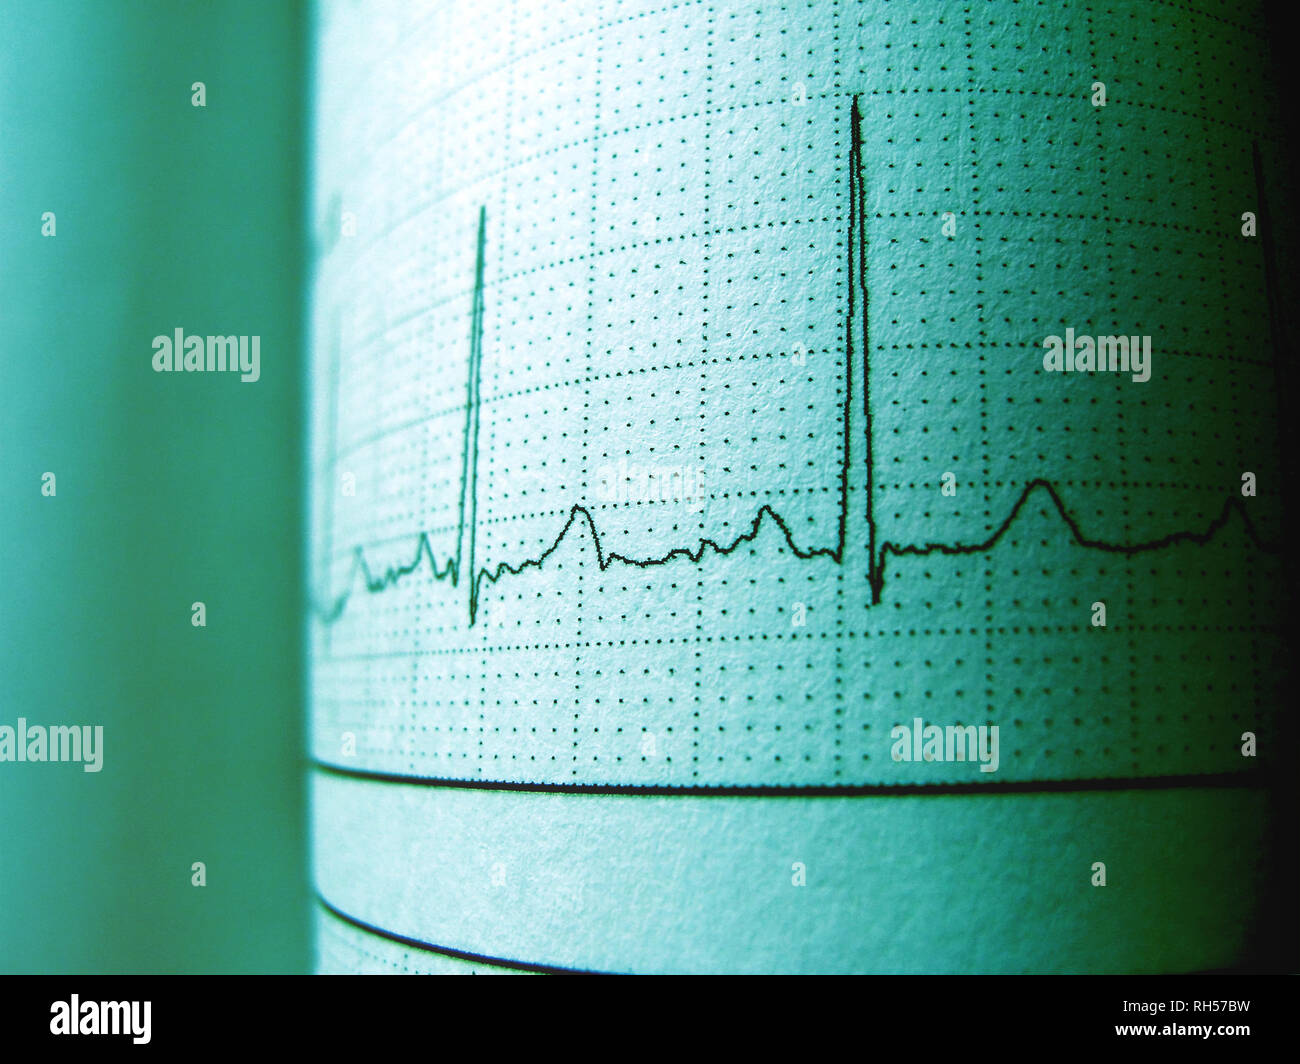 Sinus Heart Rhythm On Electrocardiogram Record Paper Showing Normal P Wave, PR and QT Interval and QRS Complex, EKG paper - Stock Image